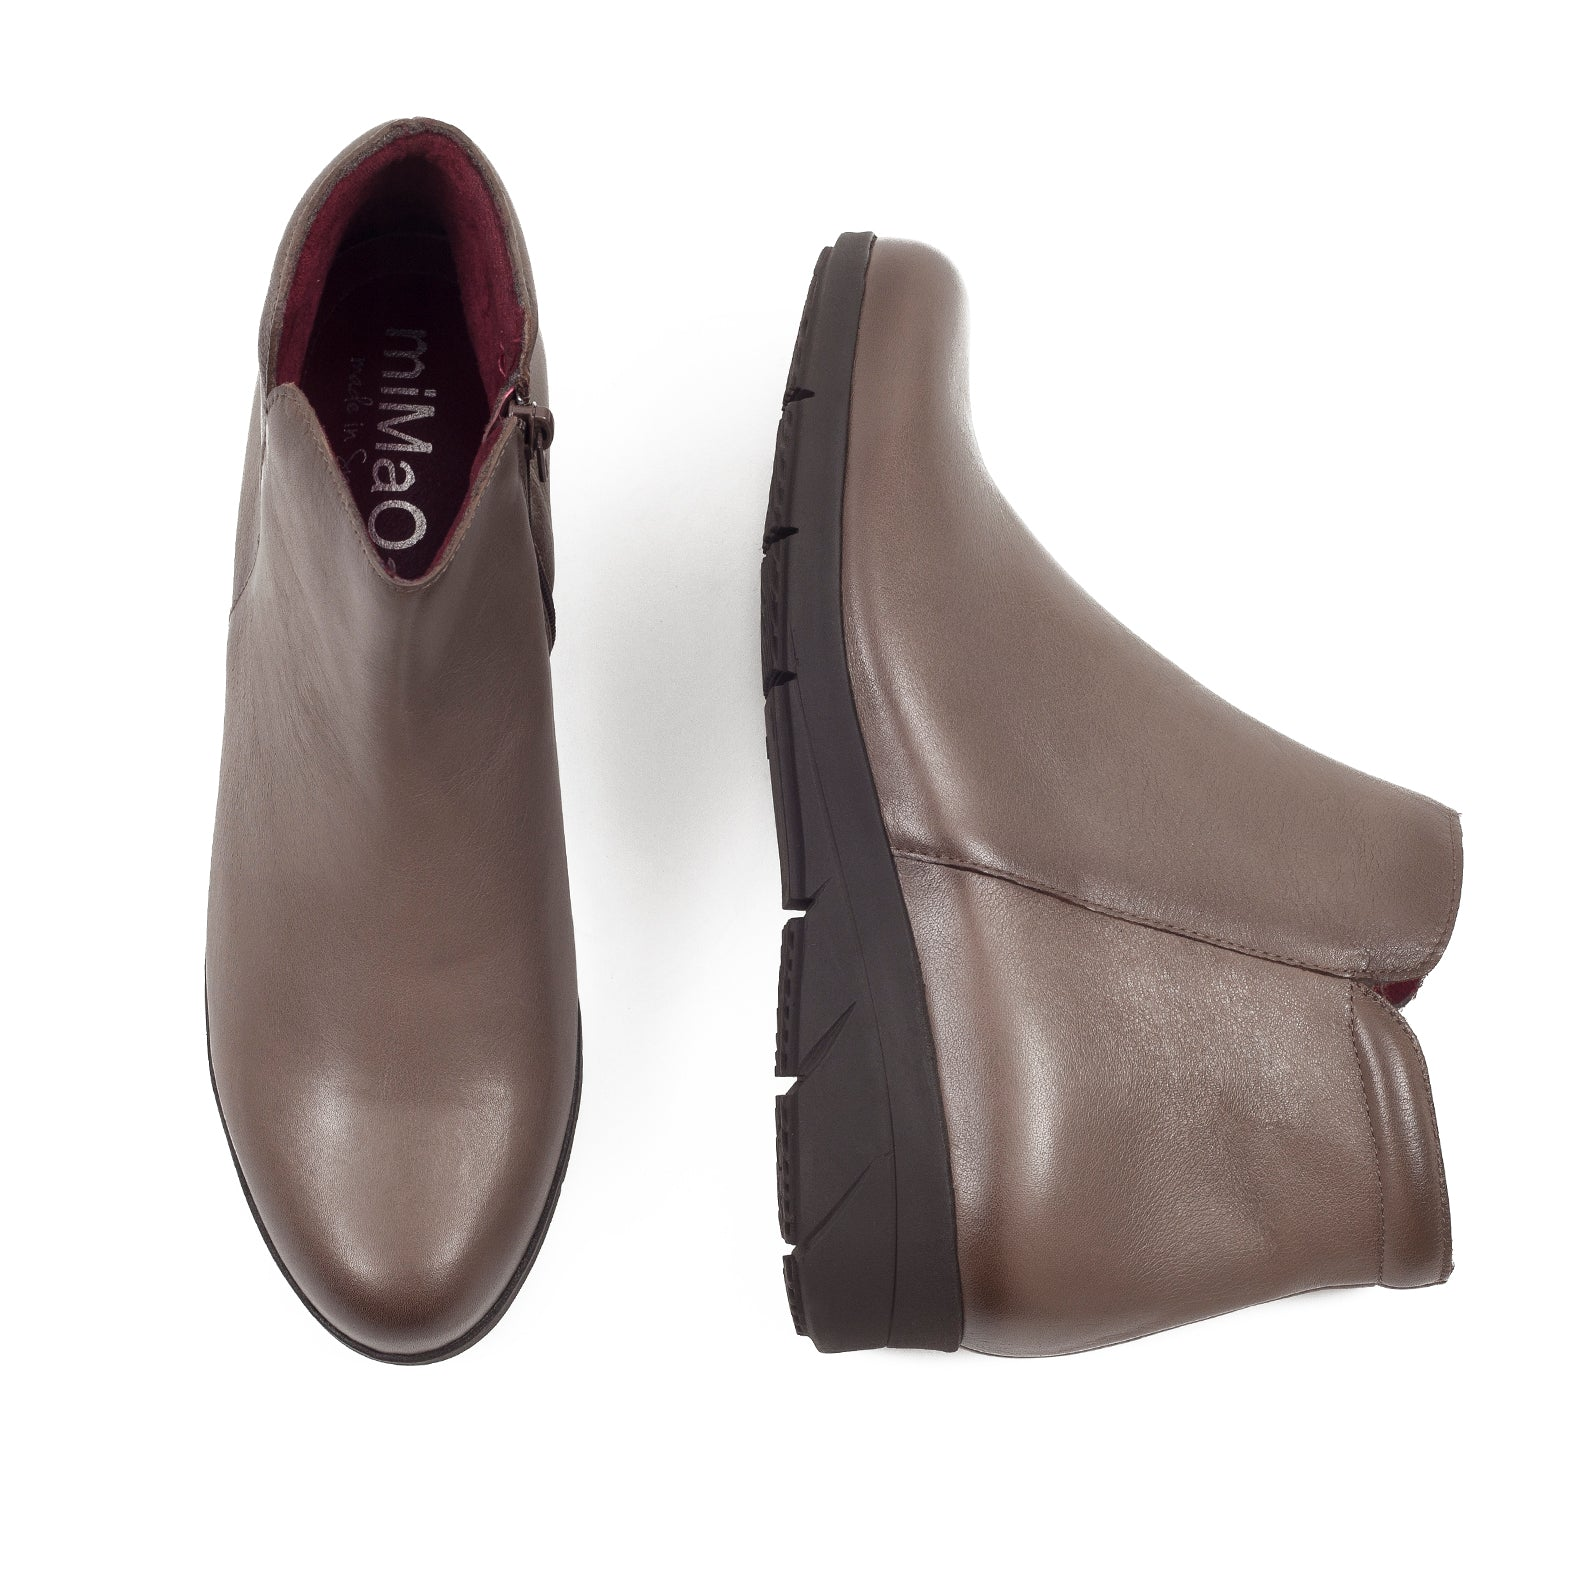 Bottine pour femme confortable 100% cuir YOGA- miMaO made in Spain ... a4c83764681